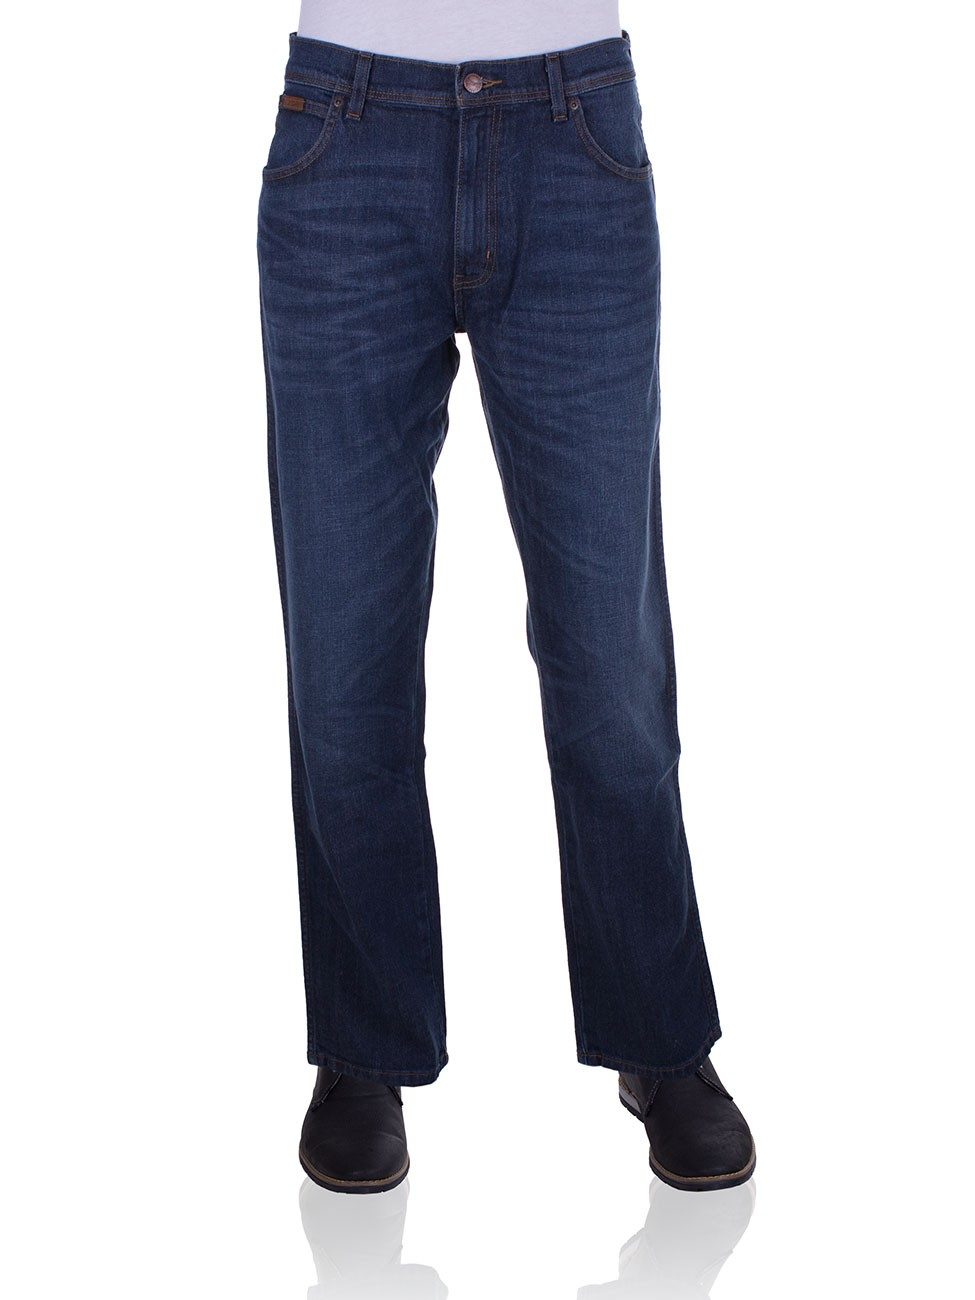 Wrangler Herren Jeans Texas Stretch Straight - Regular Fit  - SMU